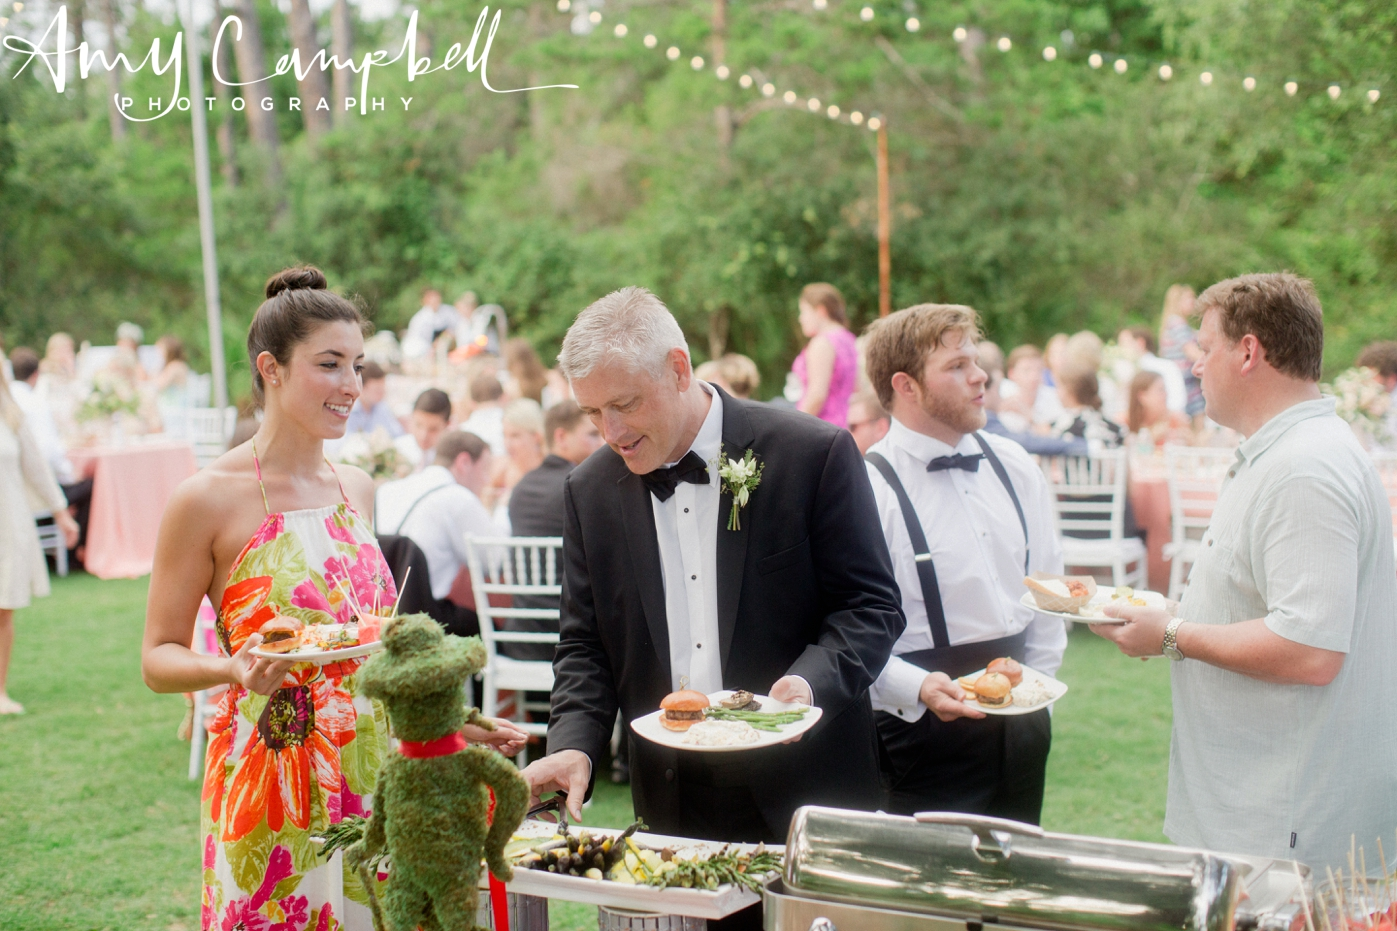 emilyreed_wed_blog_amycampbellphotography_0077.jpg